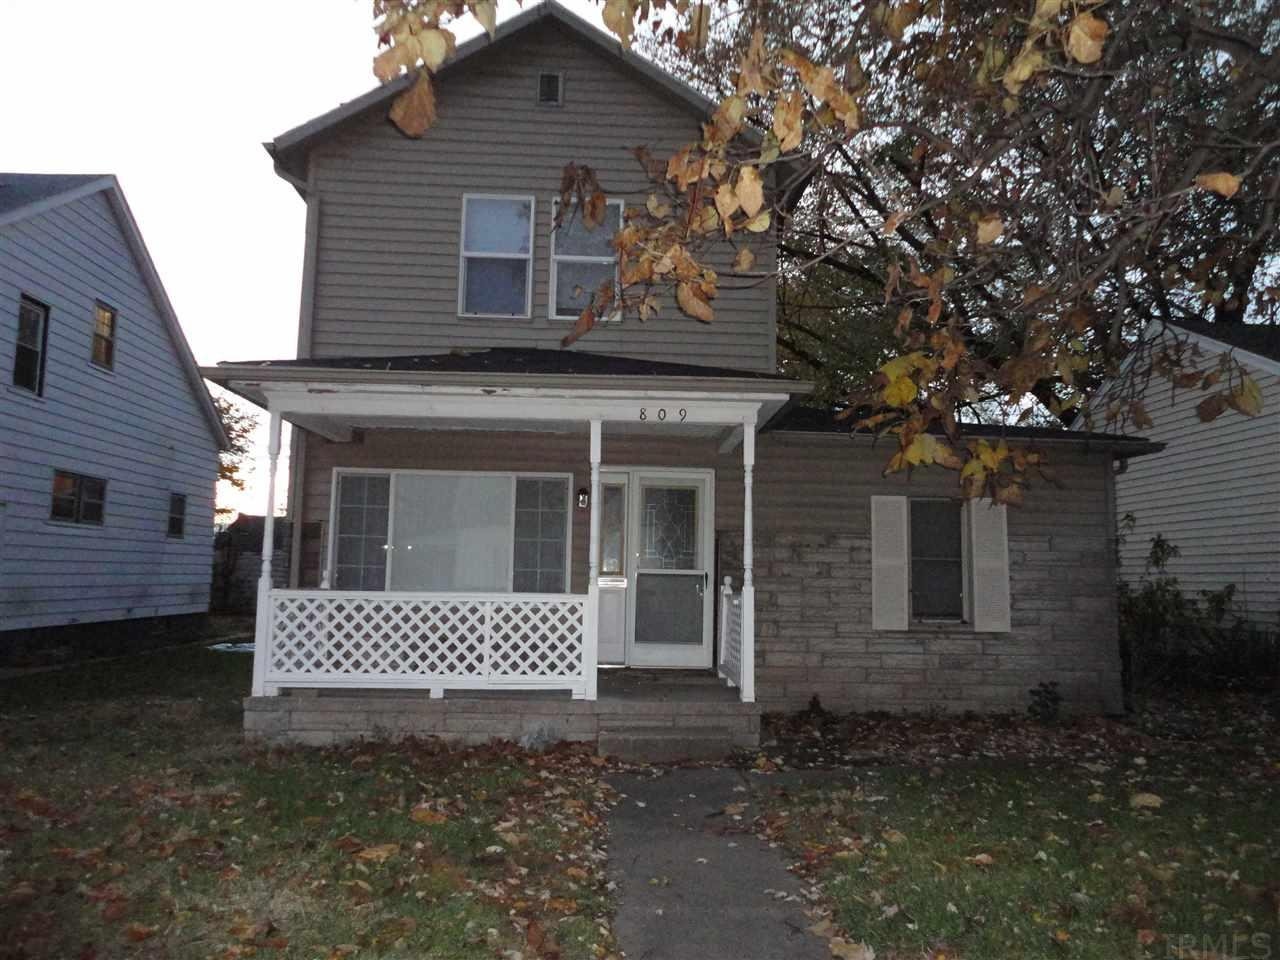 809 S Logan South Bend, IN 46615